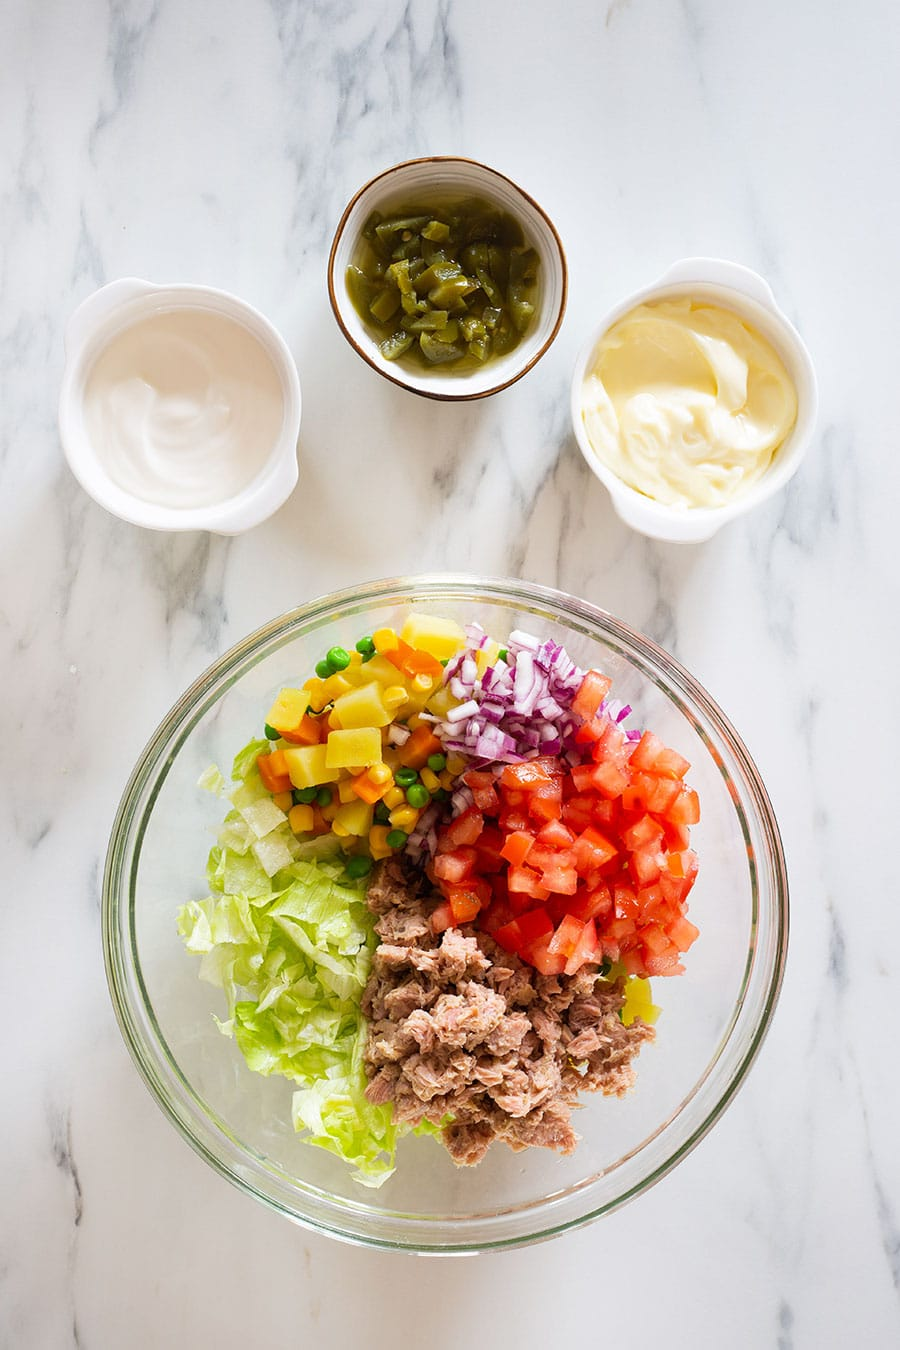 Vegetables and tuna on a bowl, and dressing ingredients on small bowls alongside.